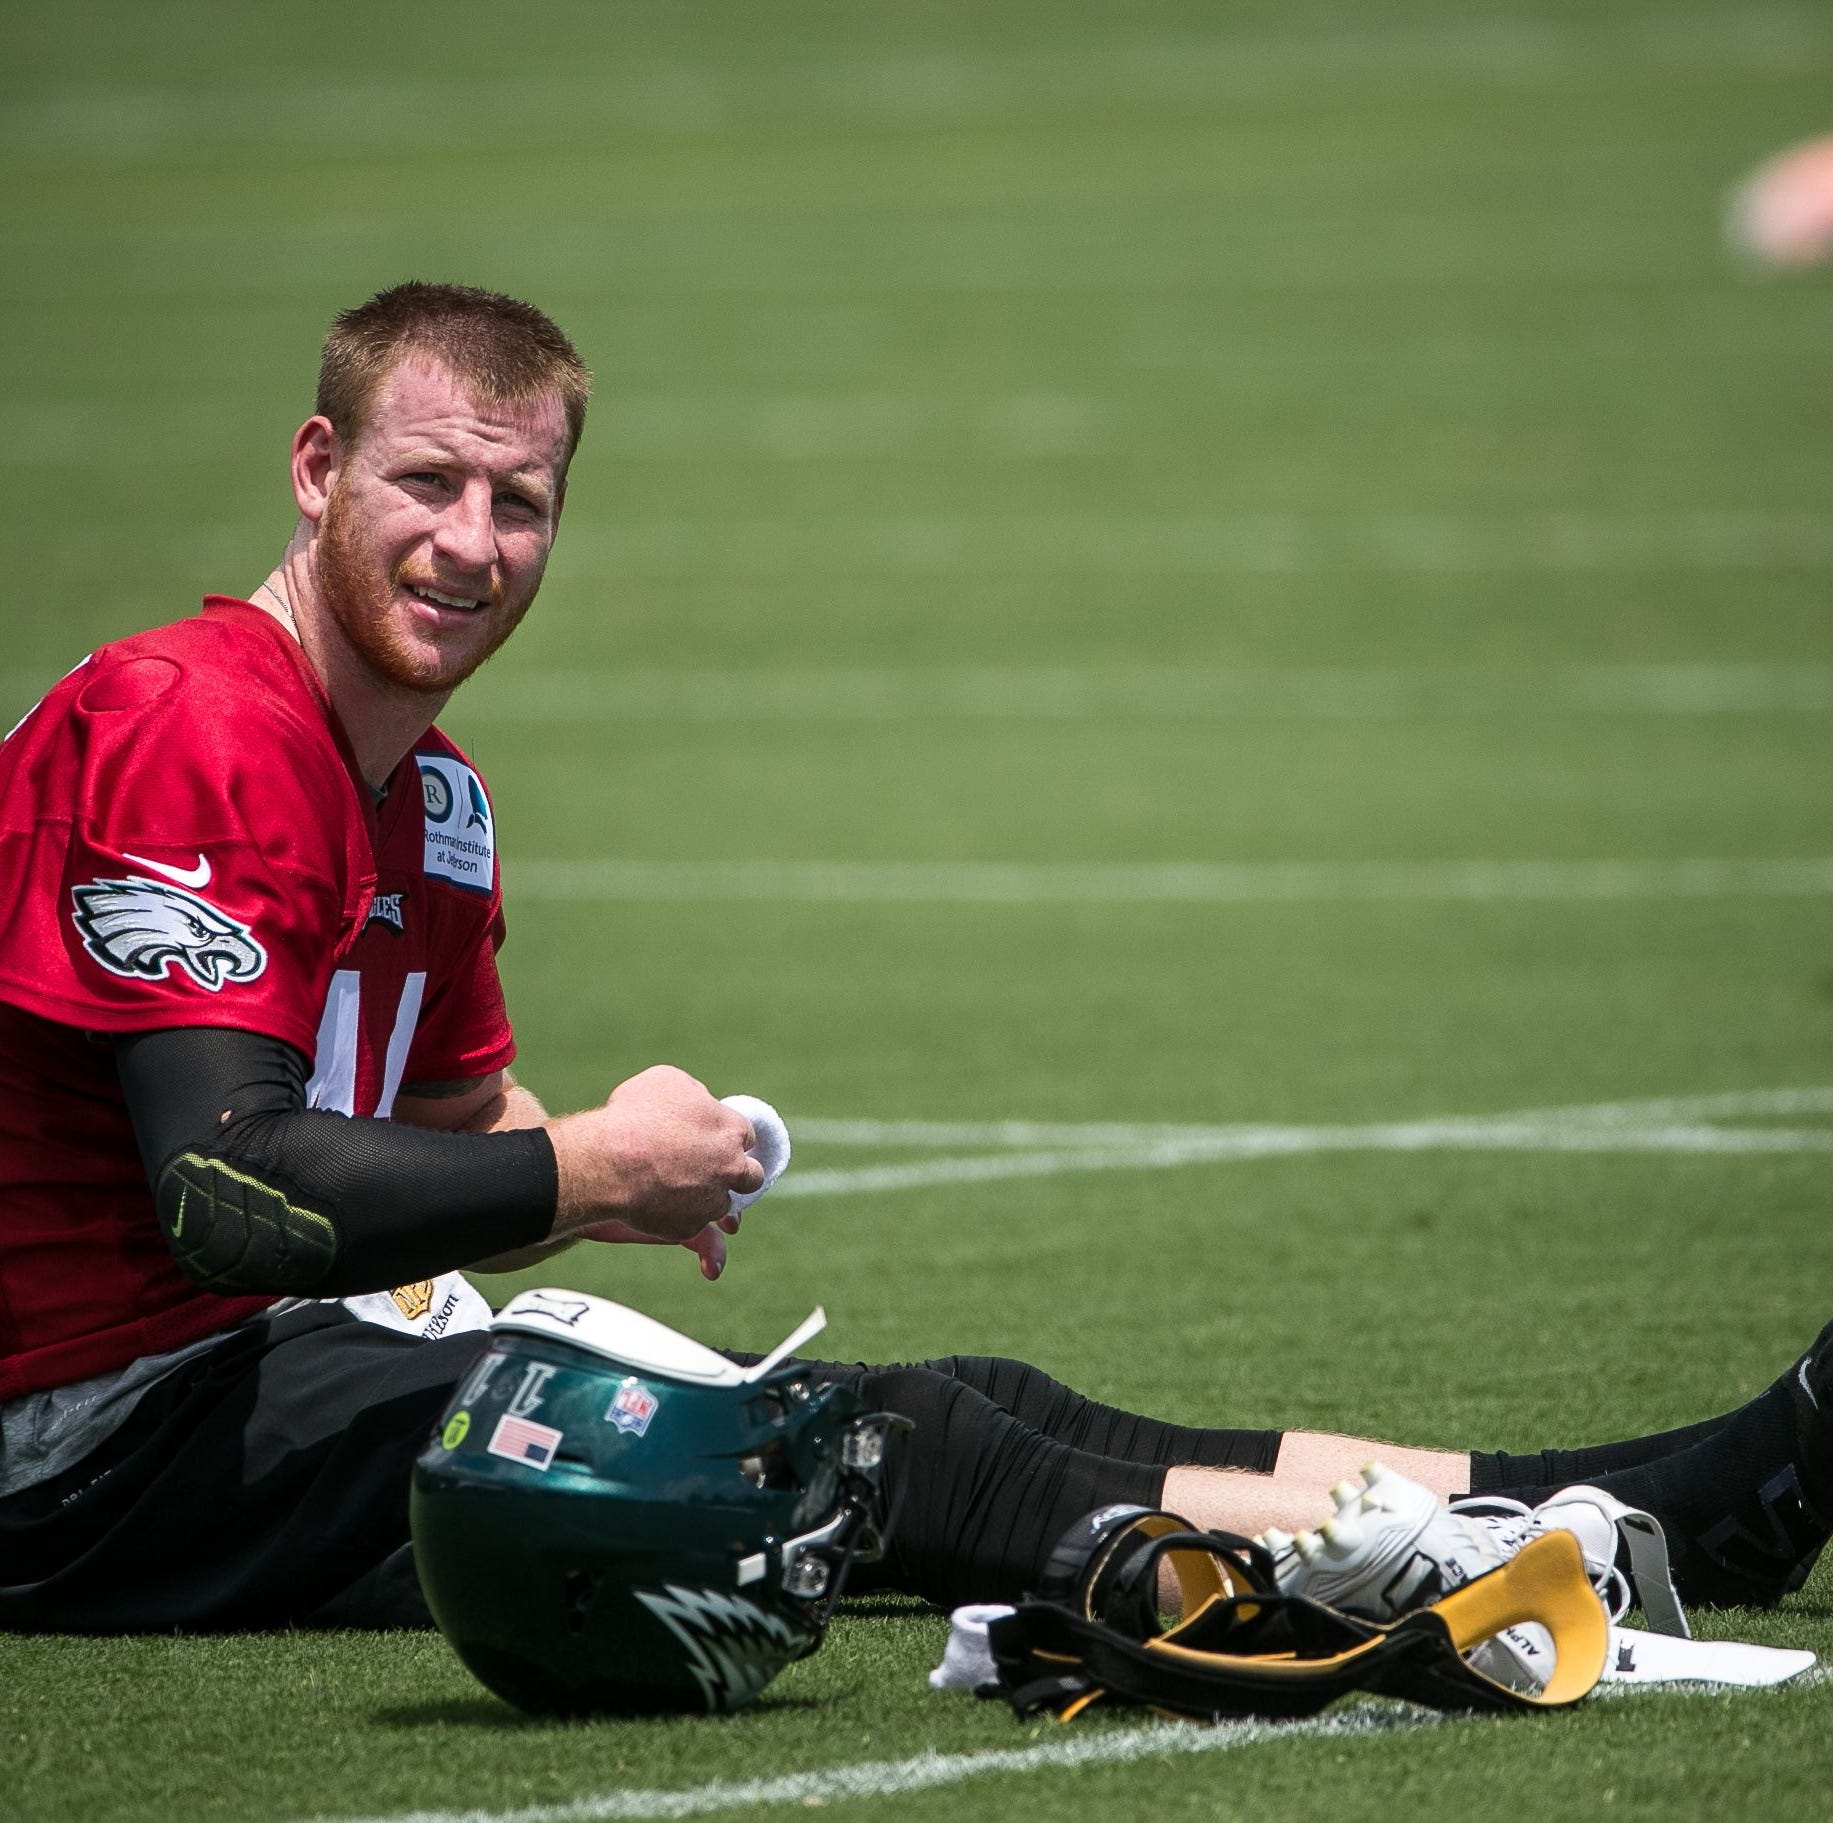 Eagles training camp: Observations from Sunday as Wentz's workload dials back